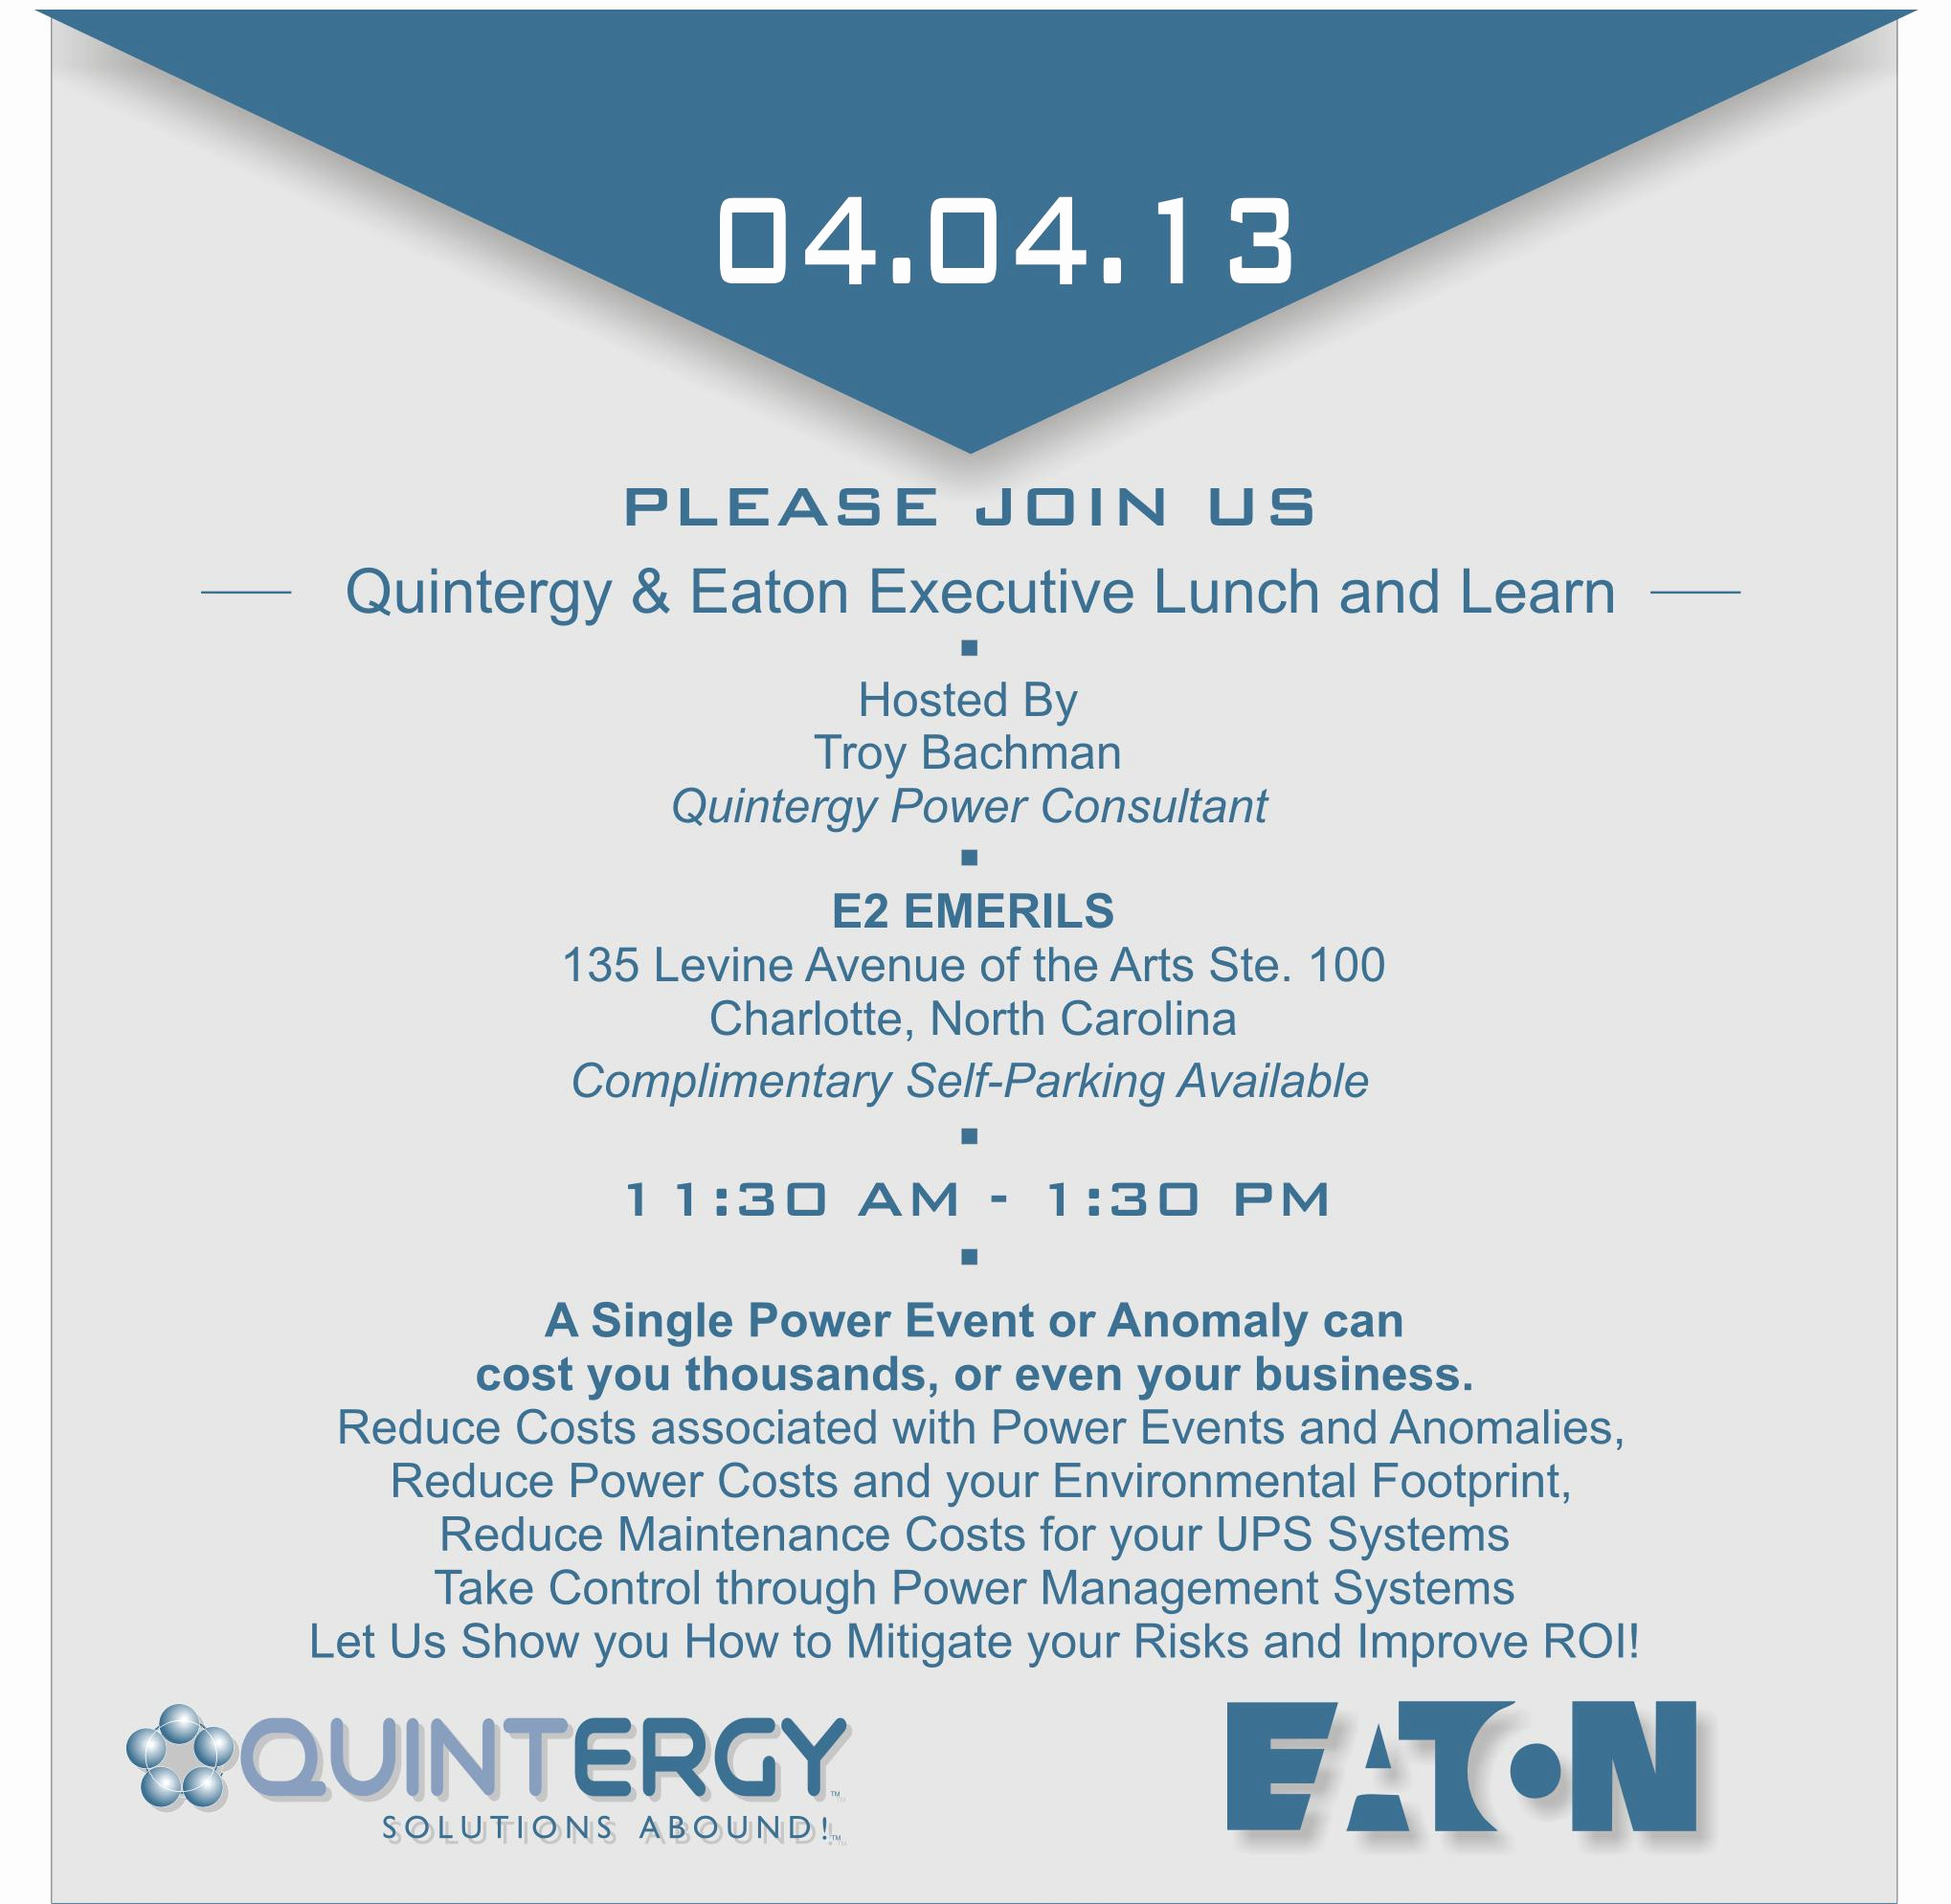 Lunch and Learn Invitation Best Of Quintergy & Eaton Executive Lunch and Learn Charlotte Nc